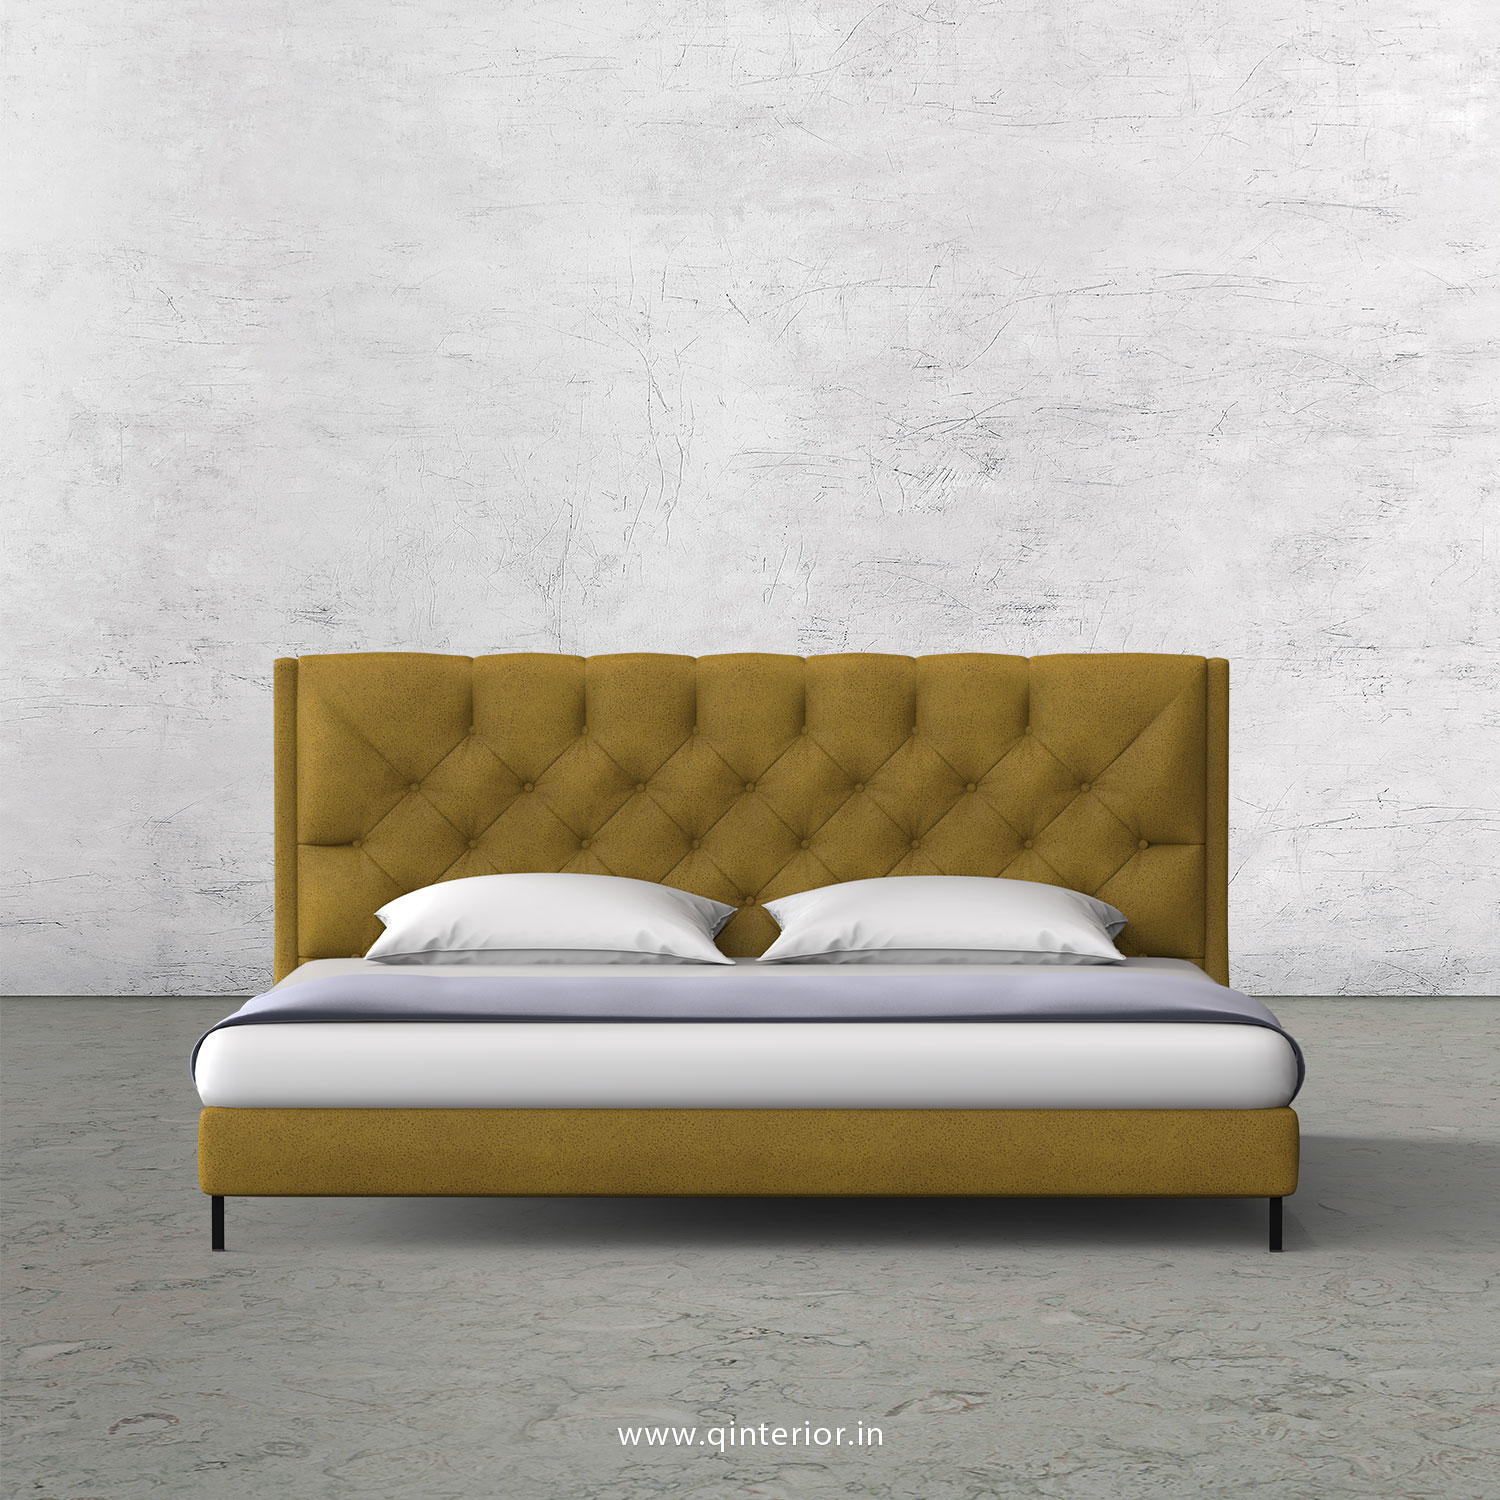 Scorpius King Size Bed in Fab Leather Fabric - KBD003 FL18